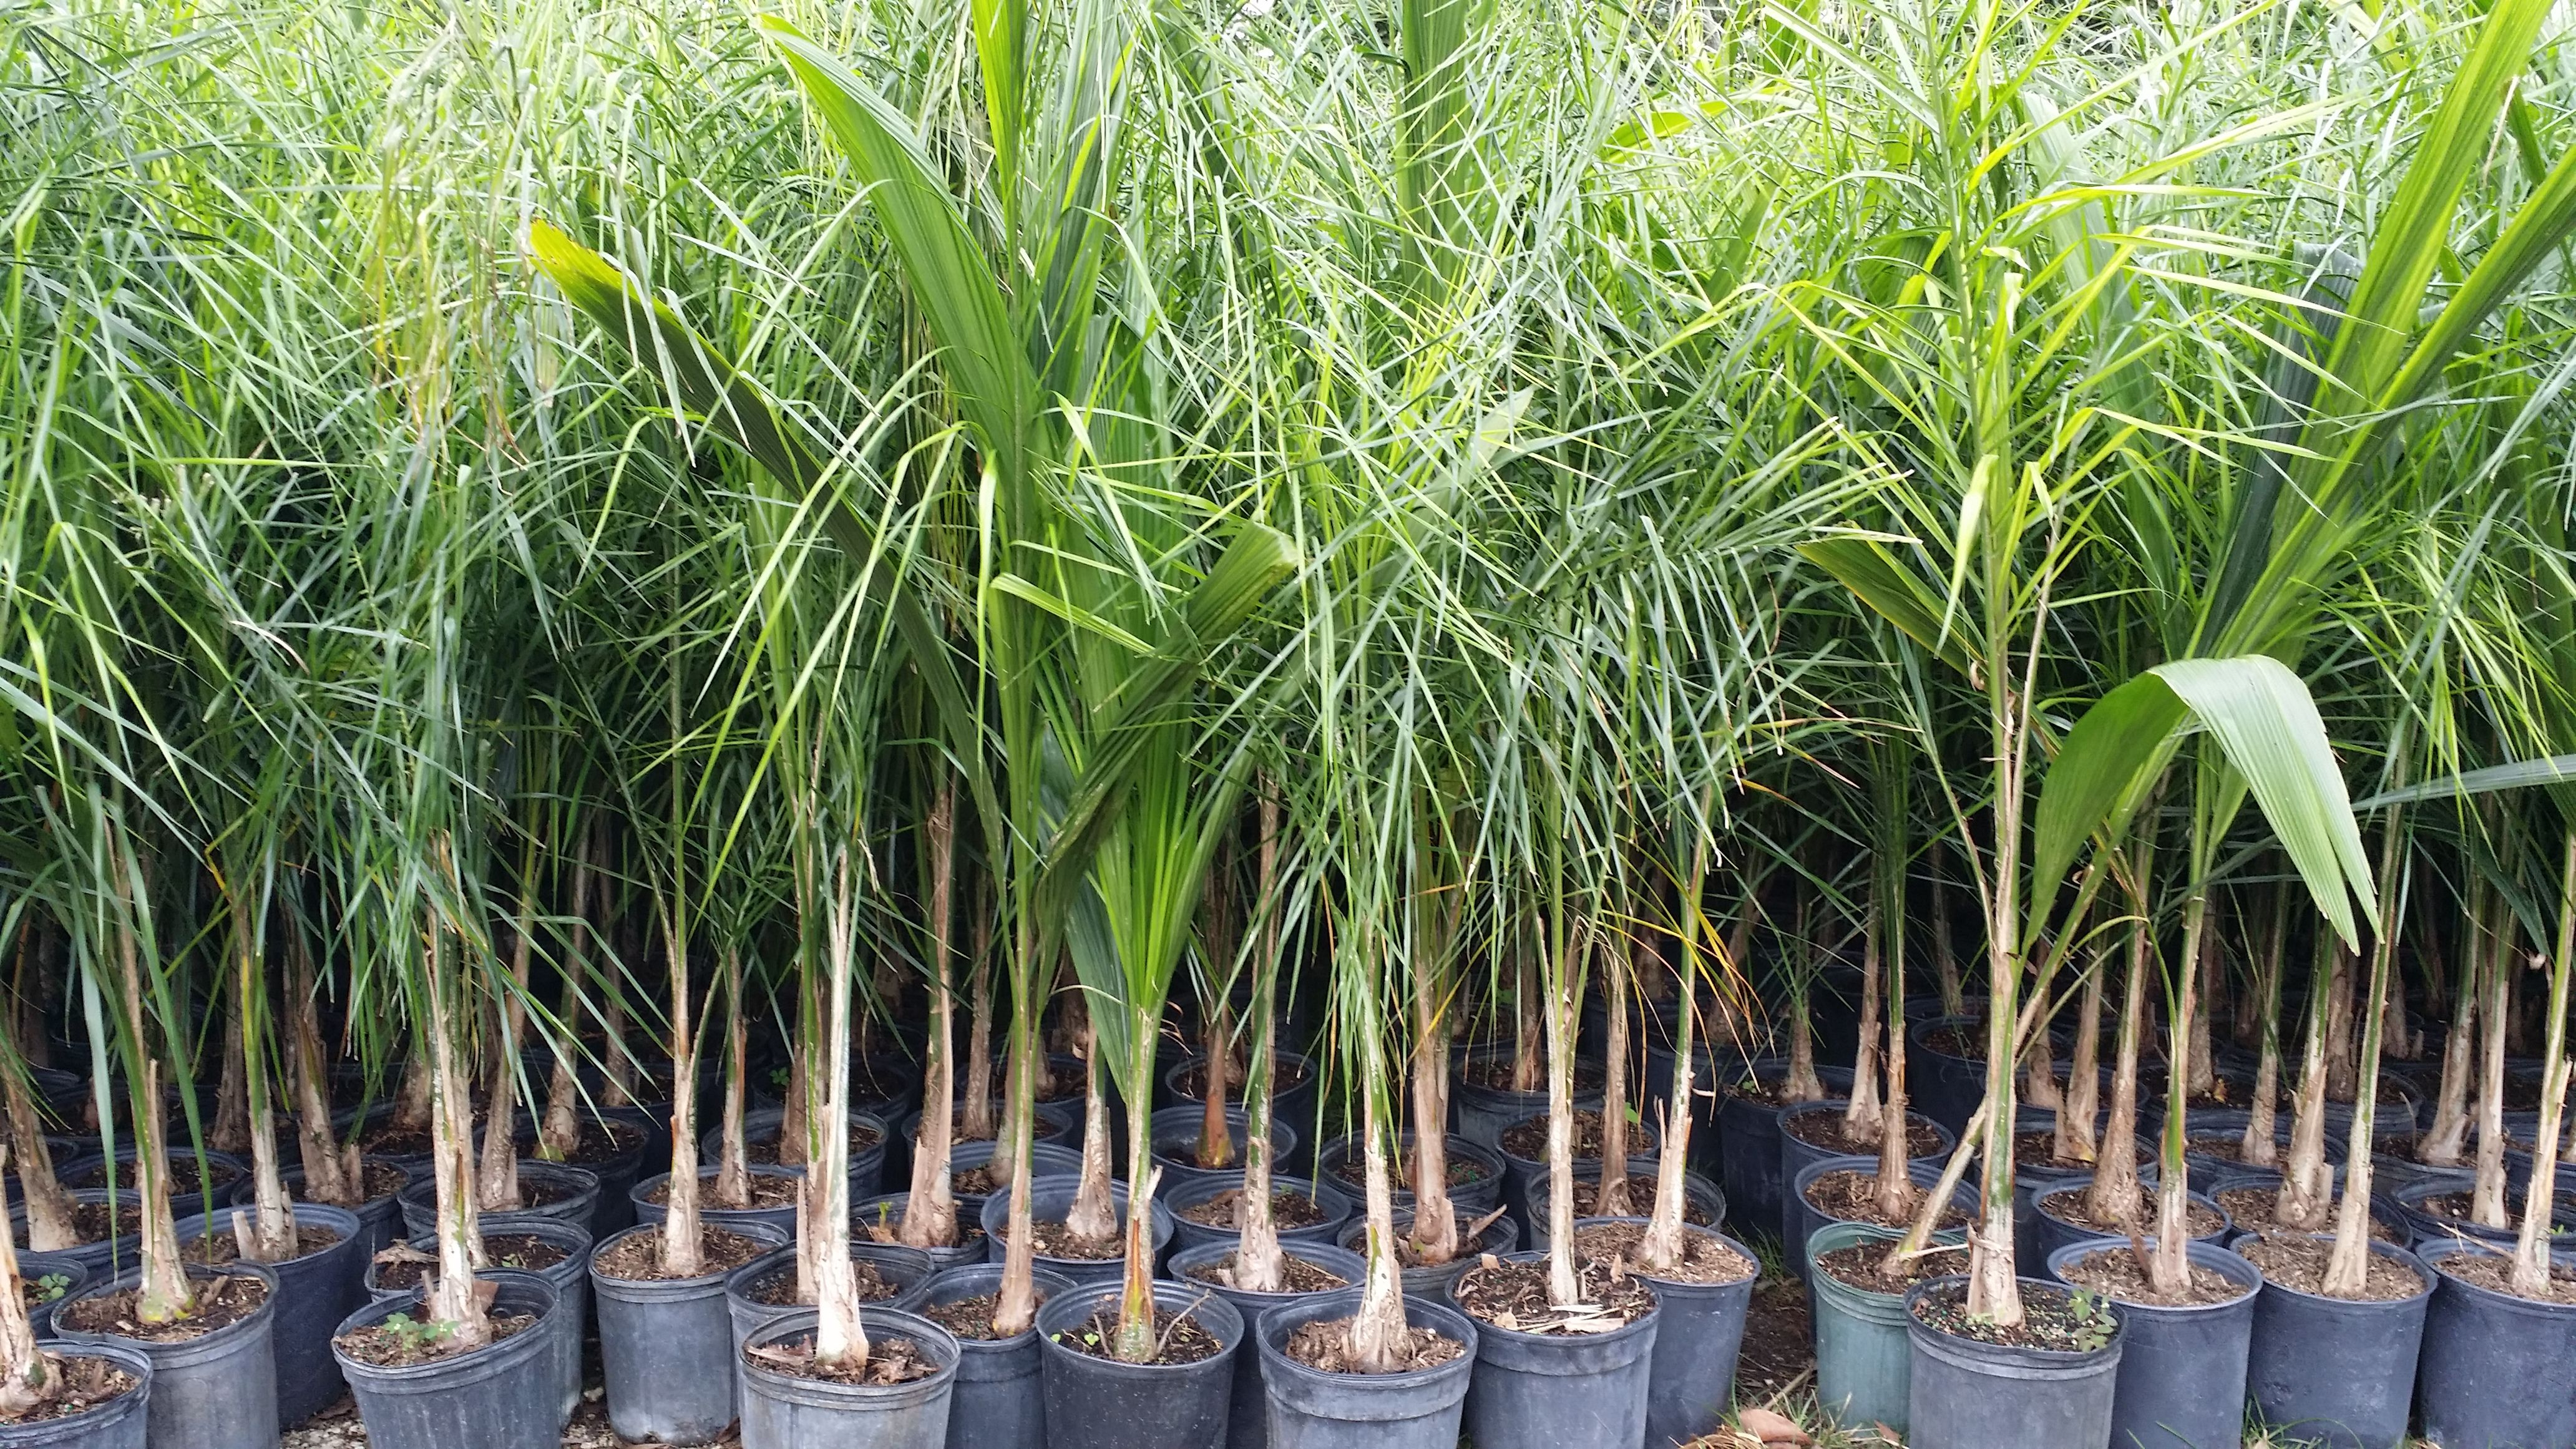 Cold Hardy Palm Trees Whole Plant Nursery Queen Palms Homestead Plants Liners